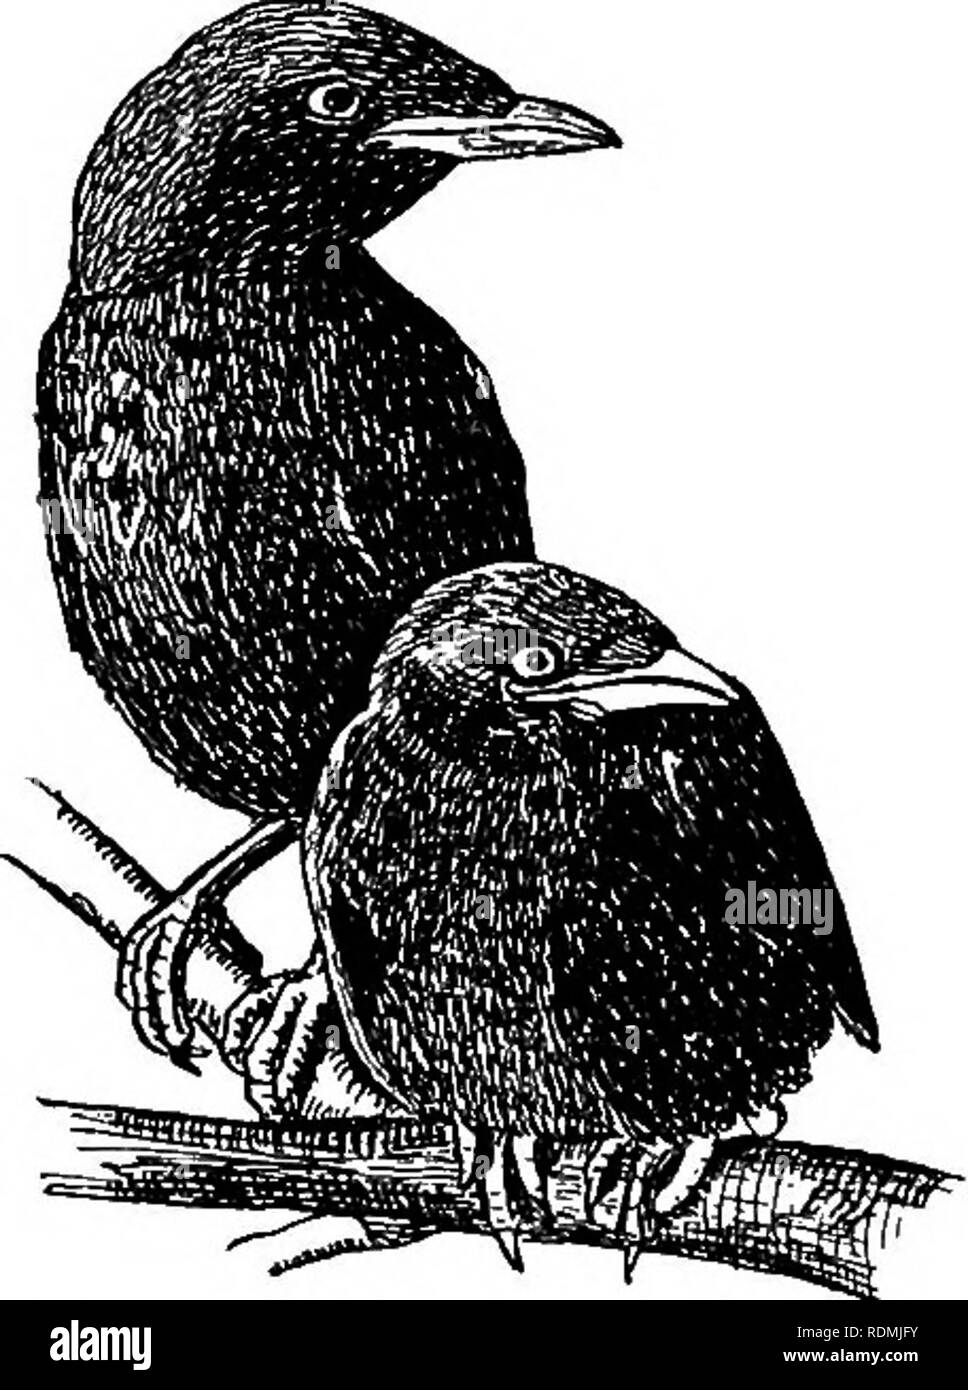 . Useful birds and their protection. Containing brief descriptions of the more common and useful species of Massachusetts, with accounts of their food habits, and a chapter on the means of attracting and protecting birds. Birds; Birds. VALUE OF BIRDS TO MAN. 49 The Time required for Assimilation of Food. If we assume that the stomach and oesophagus of a young Crow can contain but an ounce of food, then the bird would be required to digest from eight to twelve meals a day, according to its appetite and opportunity. The question at once arises, How can any digestive system complete such a task?  - Stock Image